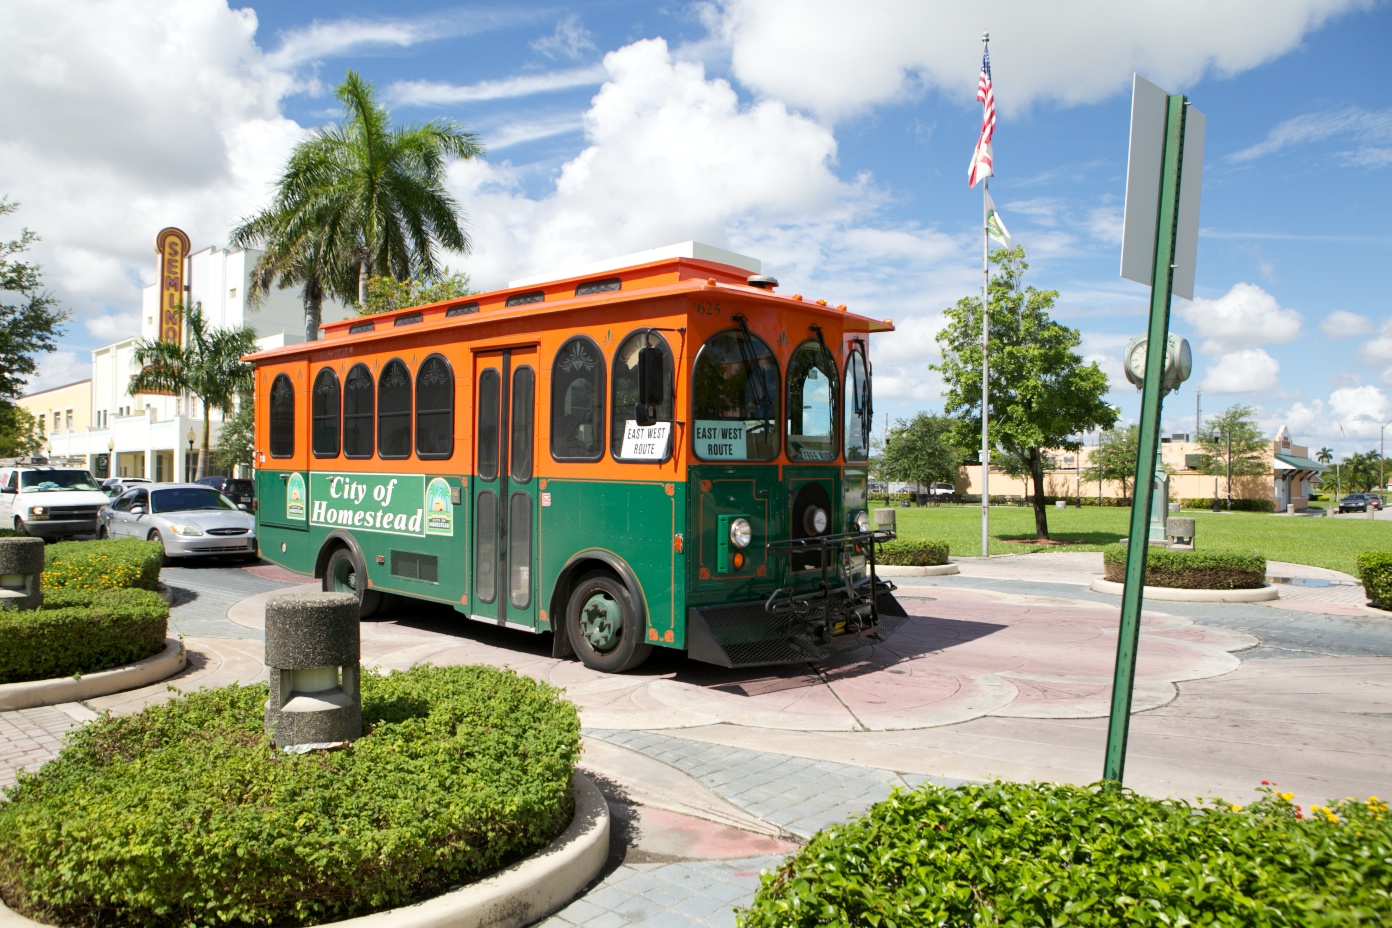 City of homestead to provide free trolley transportation for Free homestead